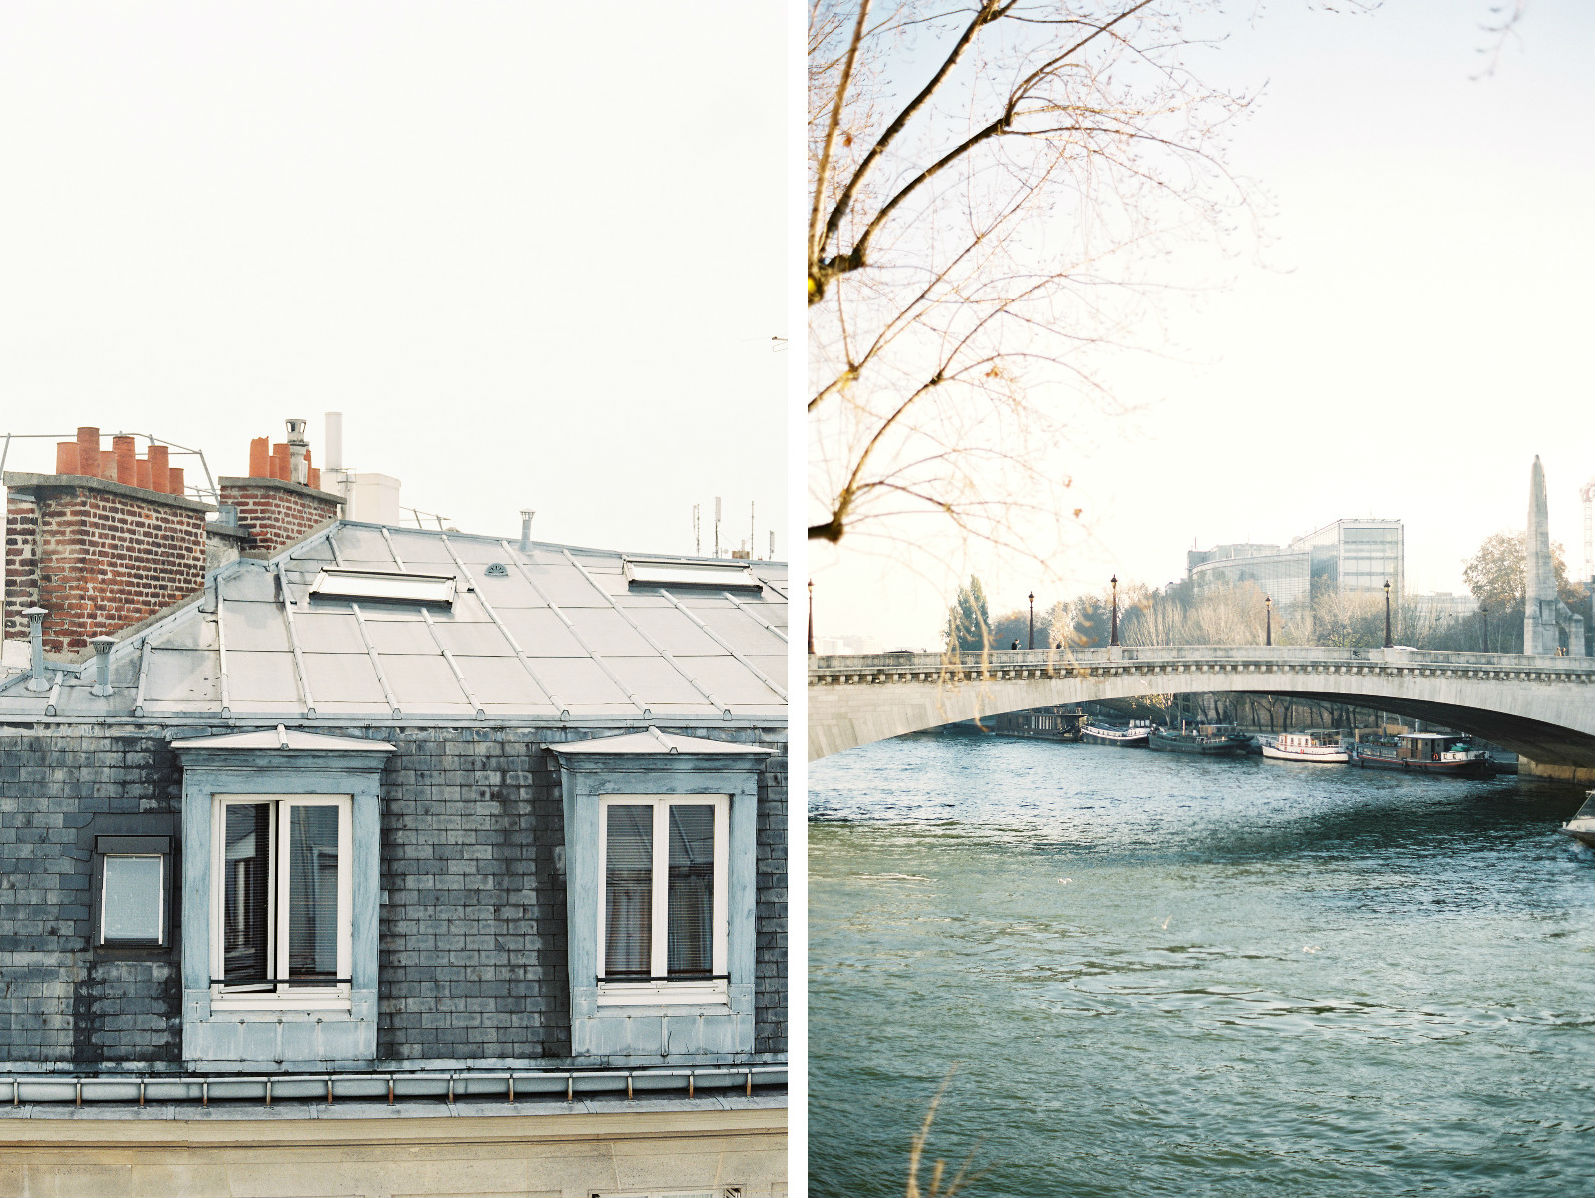 HiP Paris blog. Living, loving, learning in Paris. Over rivers and rooftops. Photo by Marjorie Preval.